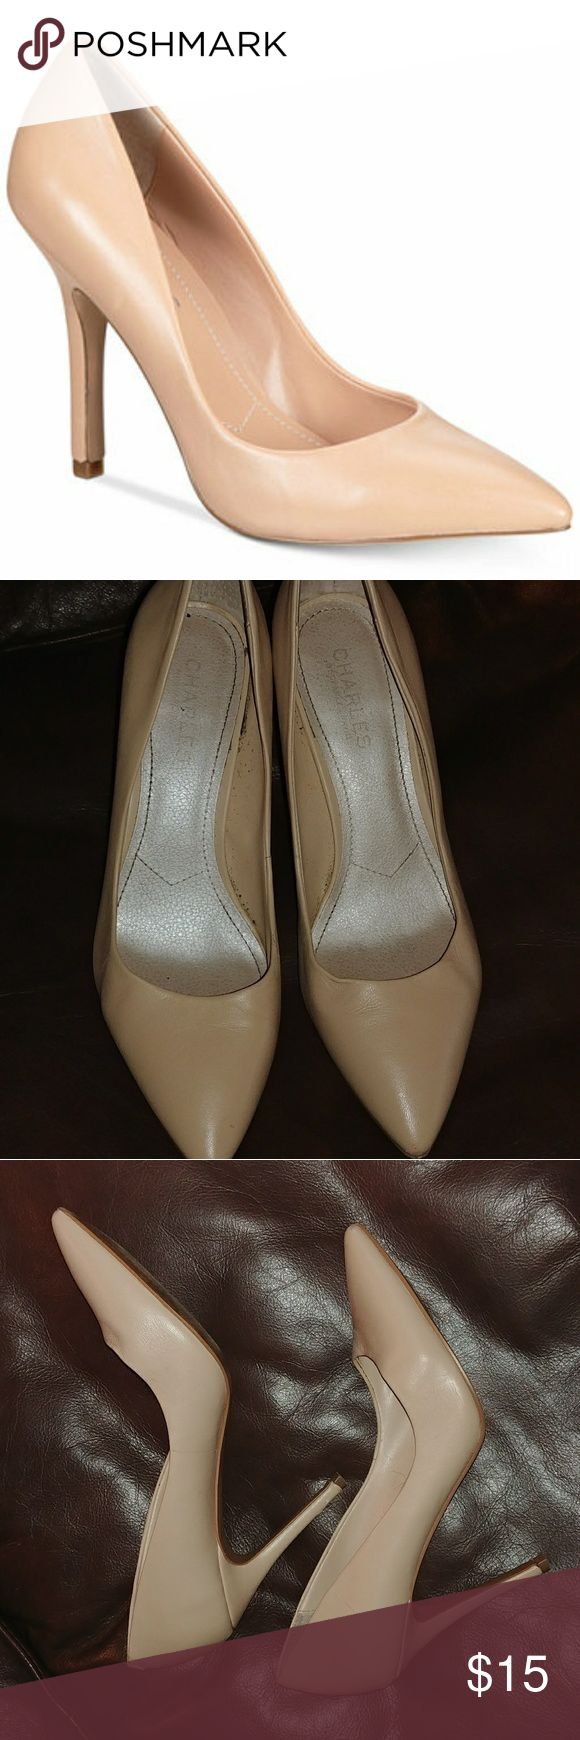 Nude high heel all leather pumps Perfect for skinny jeans and suits! On sale at Maceys for $89. These are pre owned and has an eraser head sized cut in one of the leather wrapped heels, see photo. Heel hight: 4 1/4in...continues the look of long sexy legs! Charles David Shoes Heels